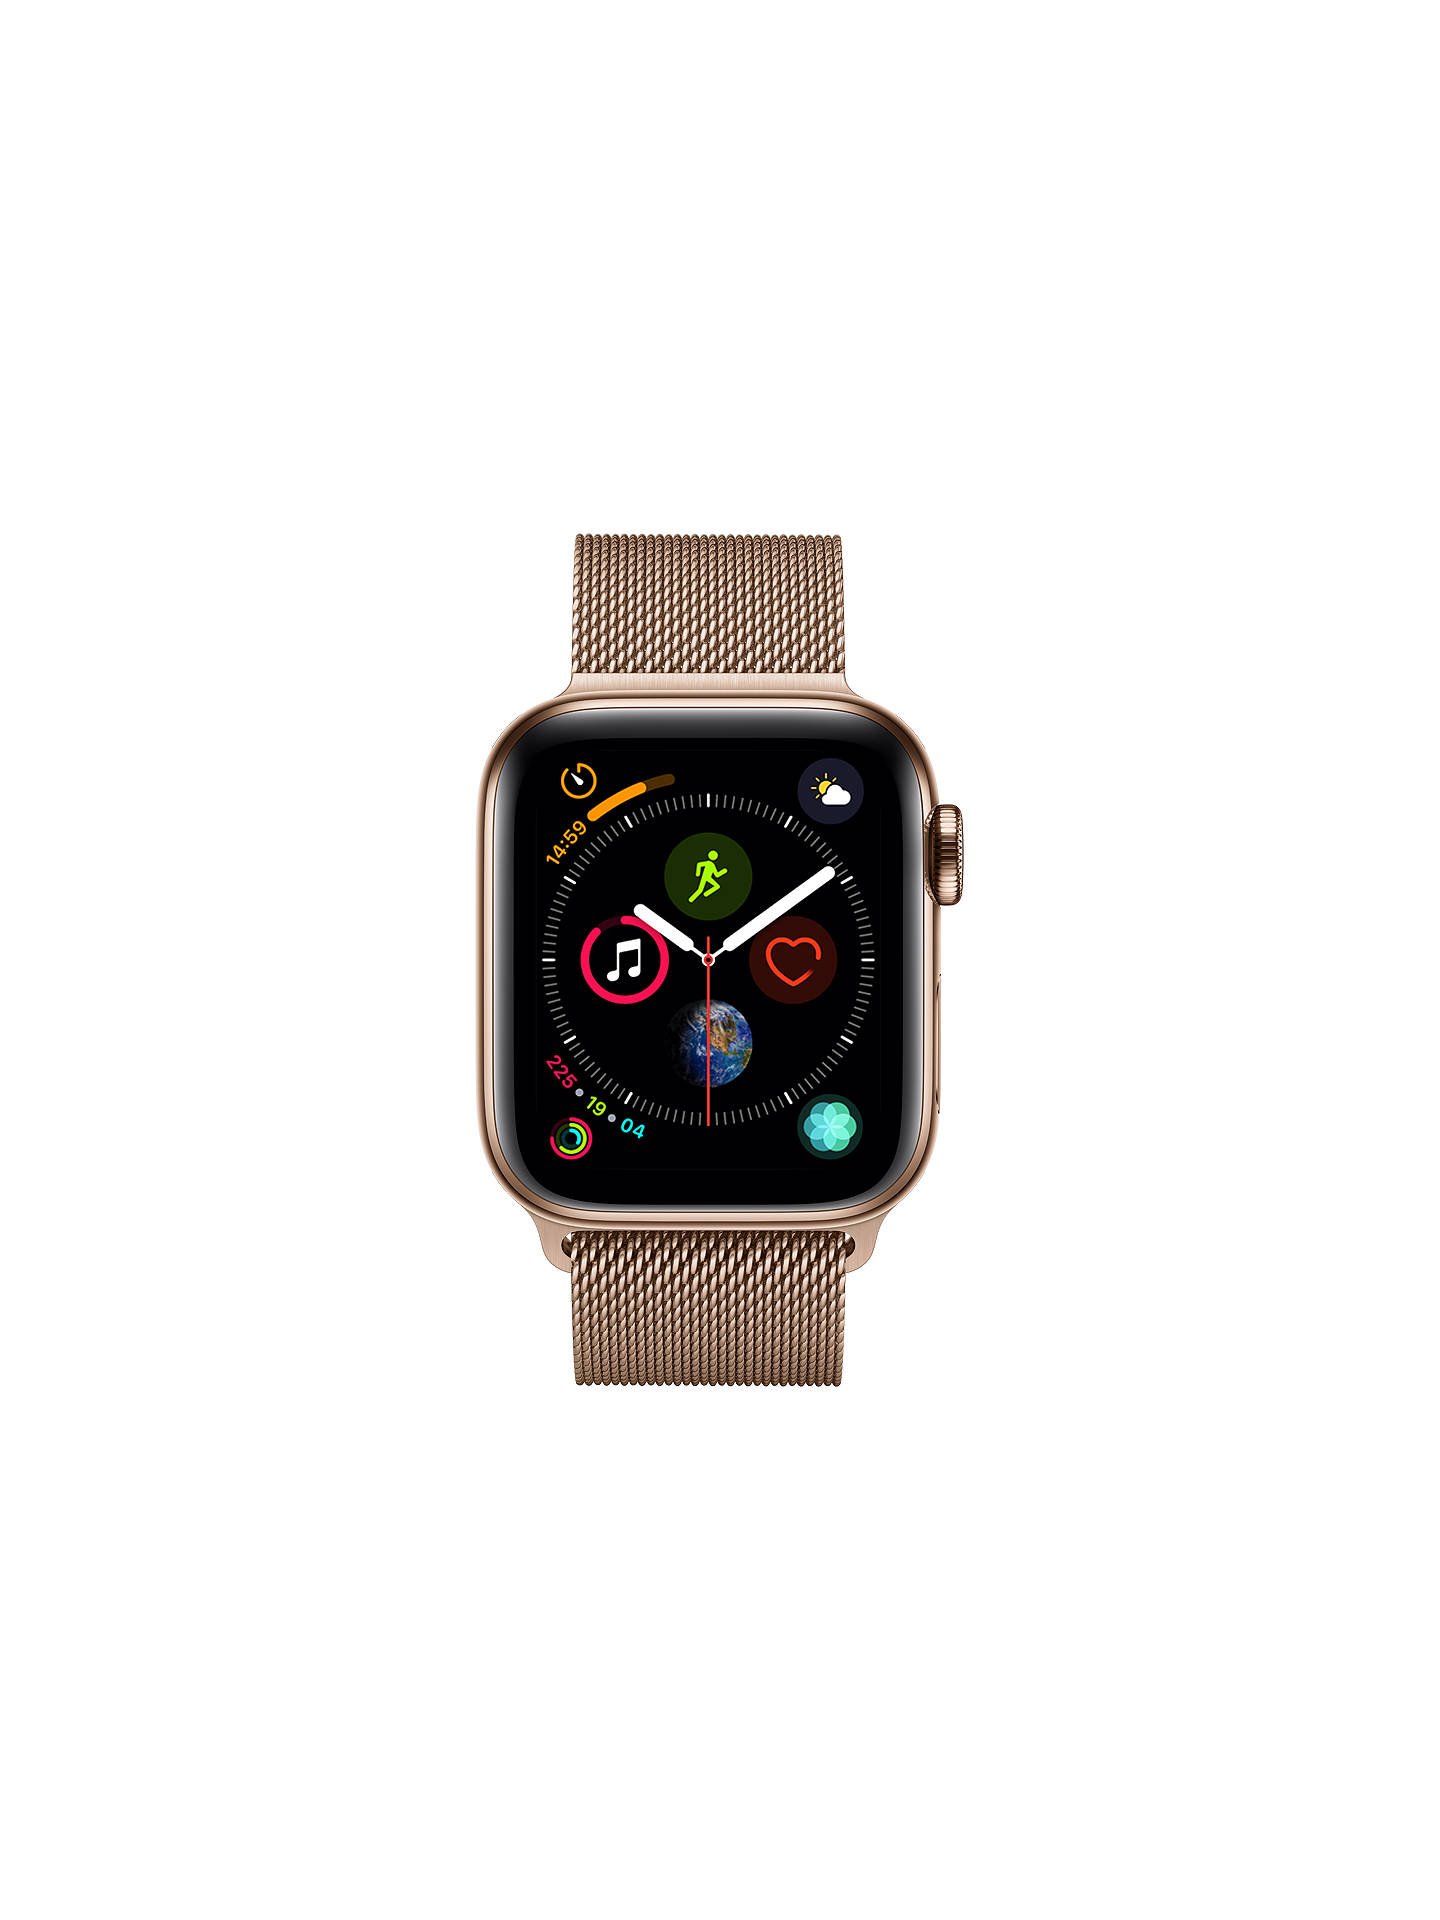 BuyApple Watch Series 4, GPS and Cellular, 40mm Stainless Steel Case with Milanese Loop, Gold Online at johnlewis.com